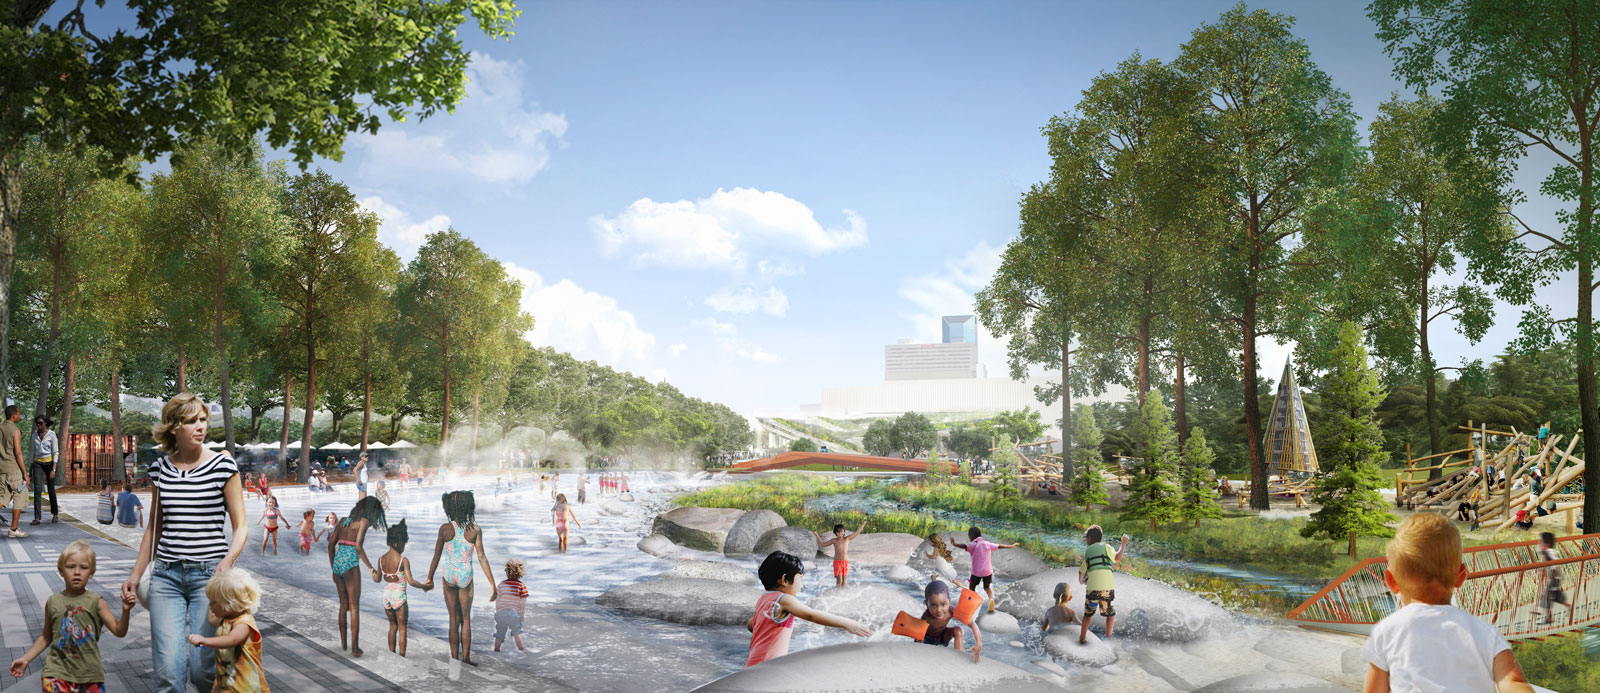 New Images Revealed Of The Town Branch Park In Lexington Kentucky